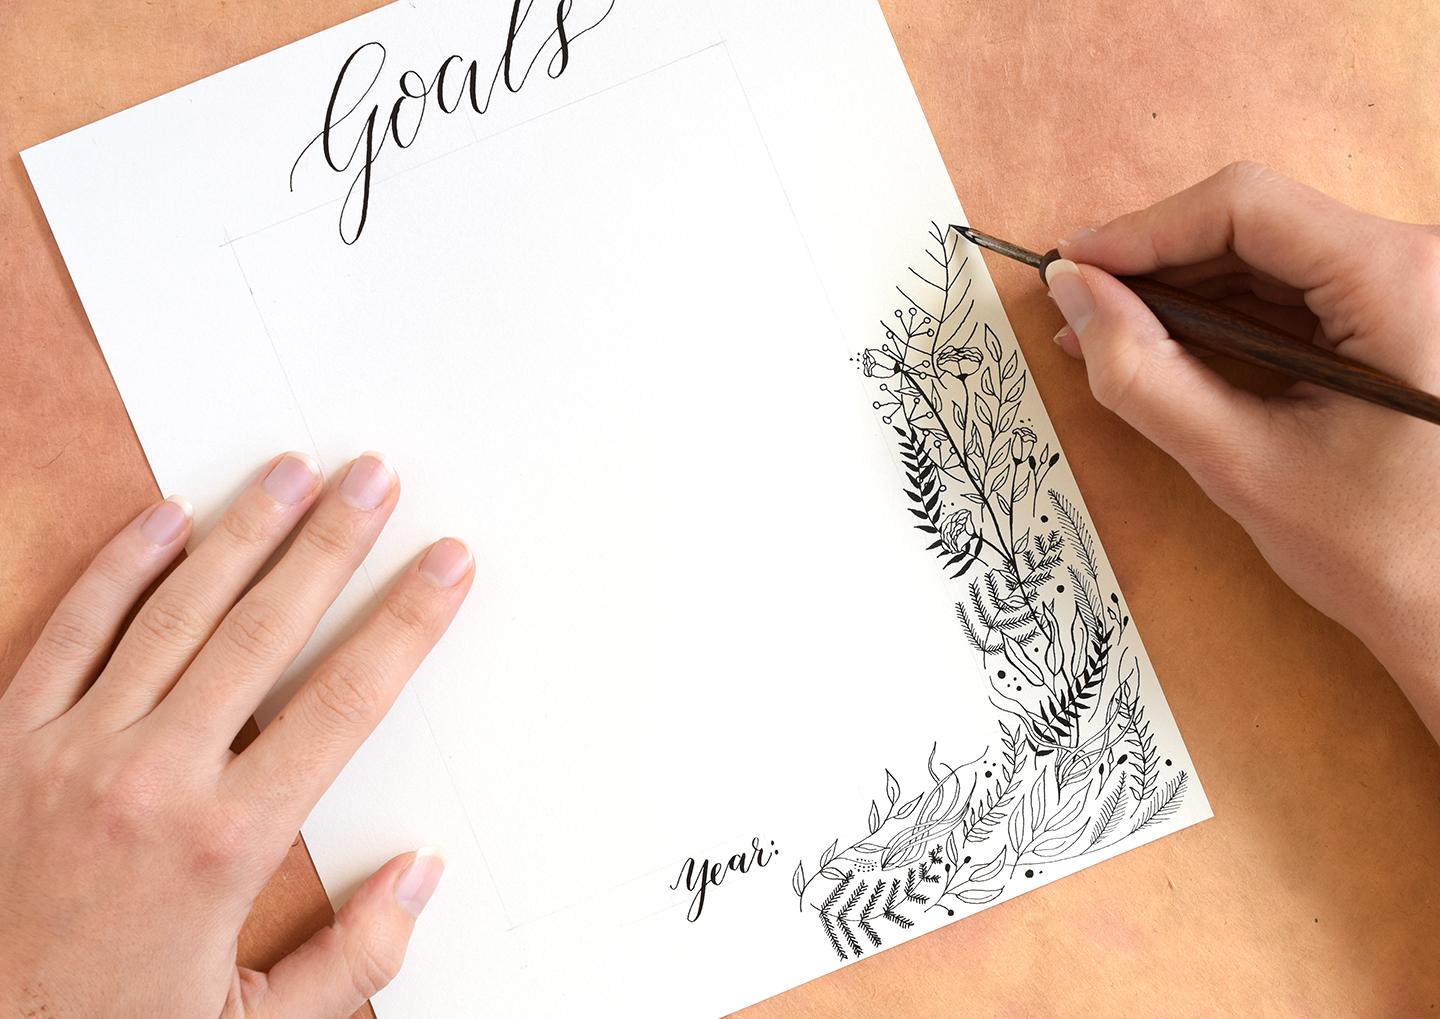 Printable Goal List with Botanical Border | The Postman's Knock